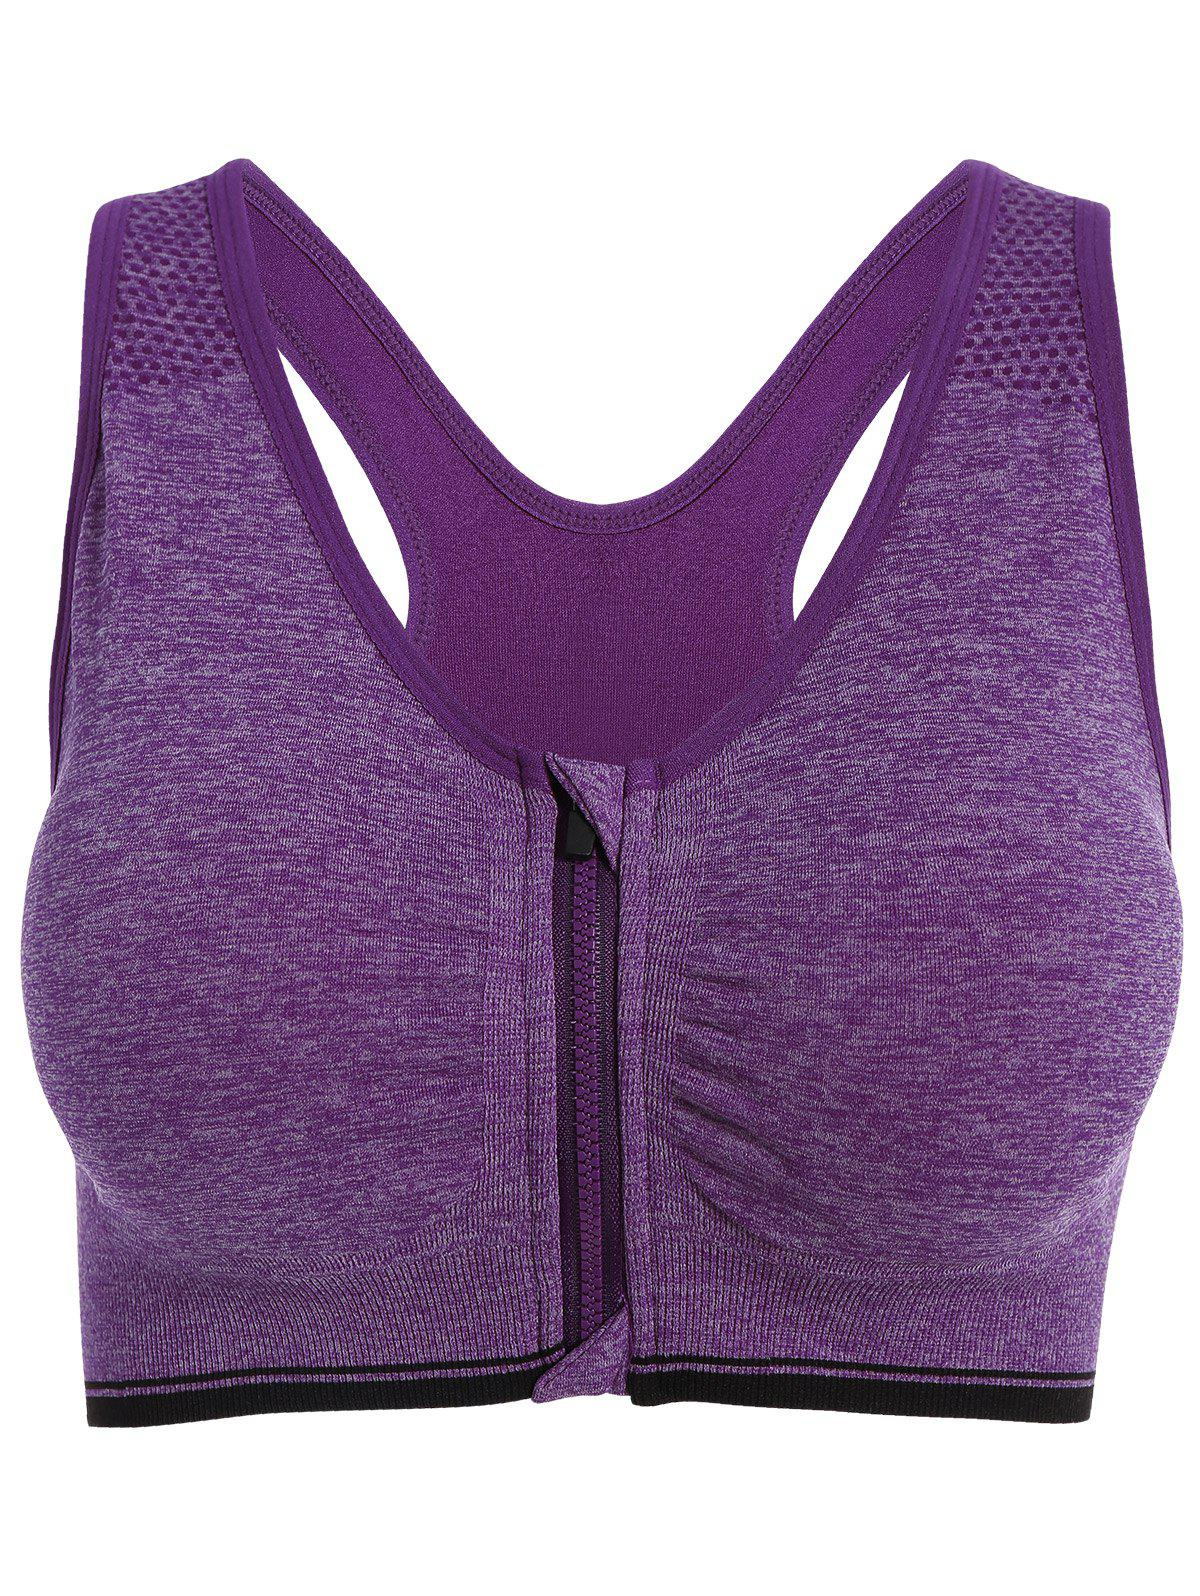 Zipper rembourrée Sports Bra - Pourpre L